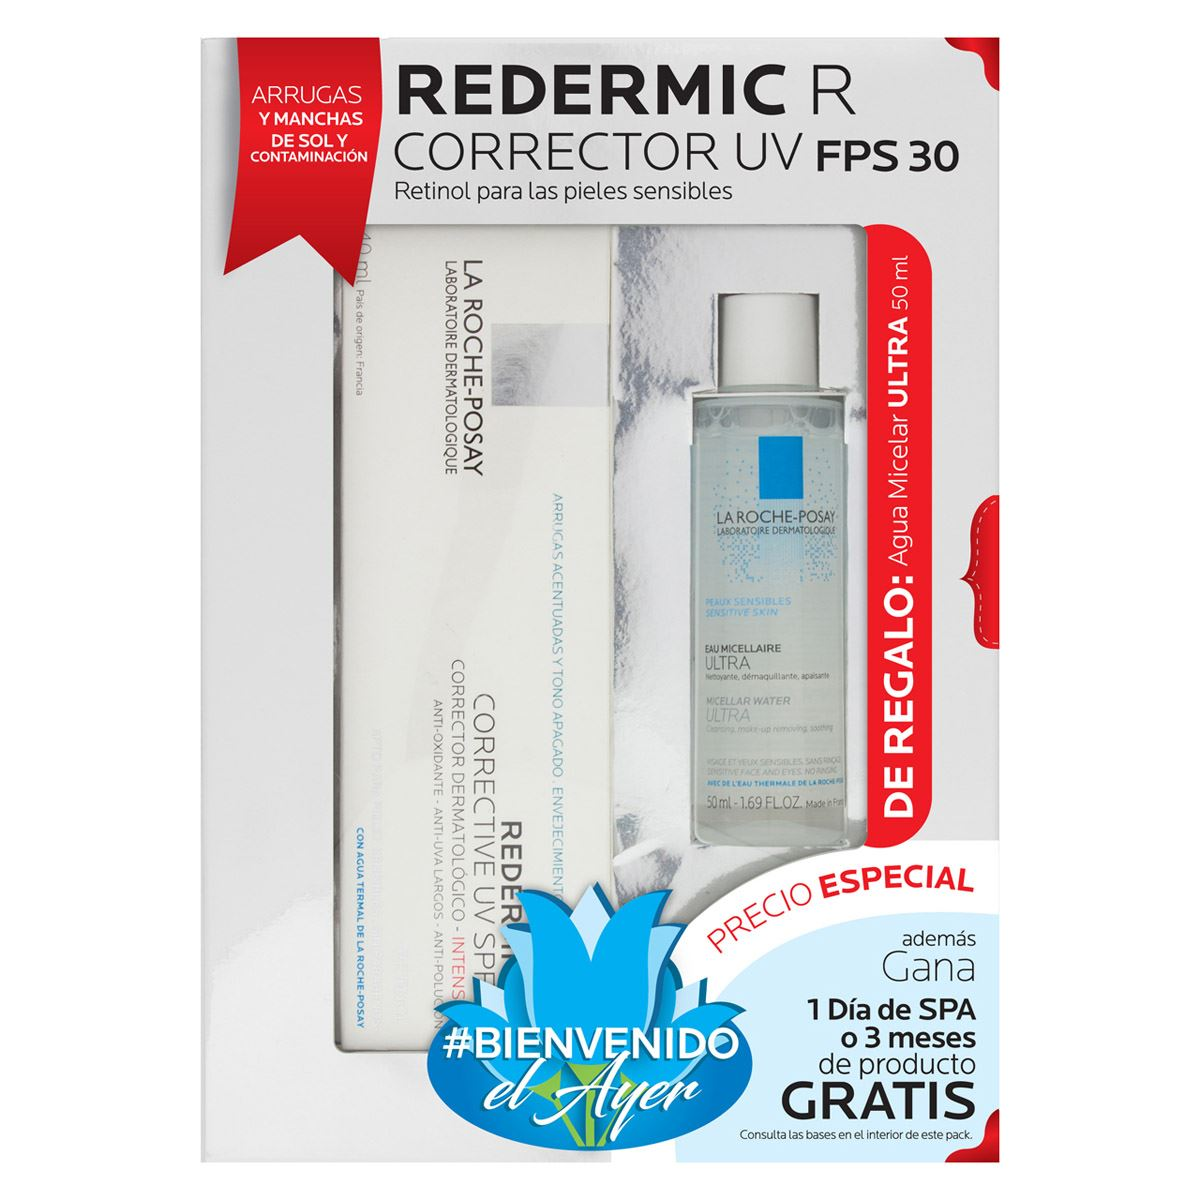 Pack redermic r uv con fps 30 + agua micelar de 50 ml de regalo  - Sanborns